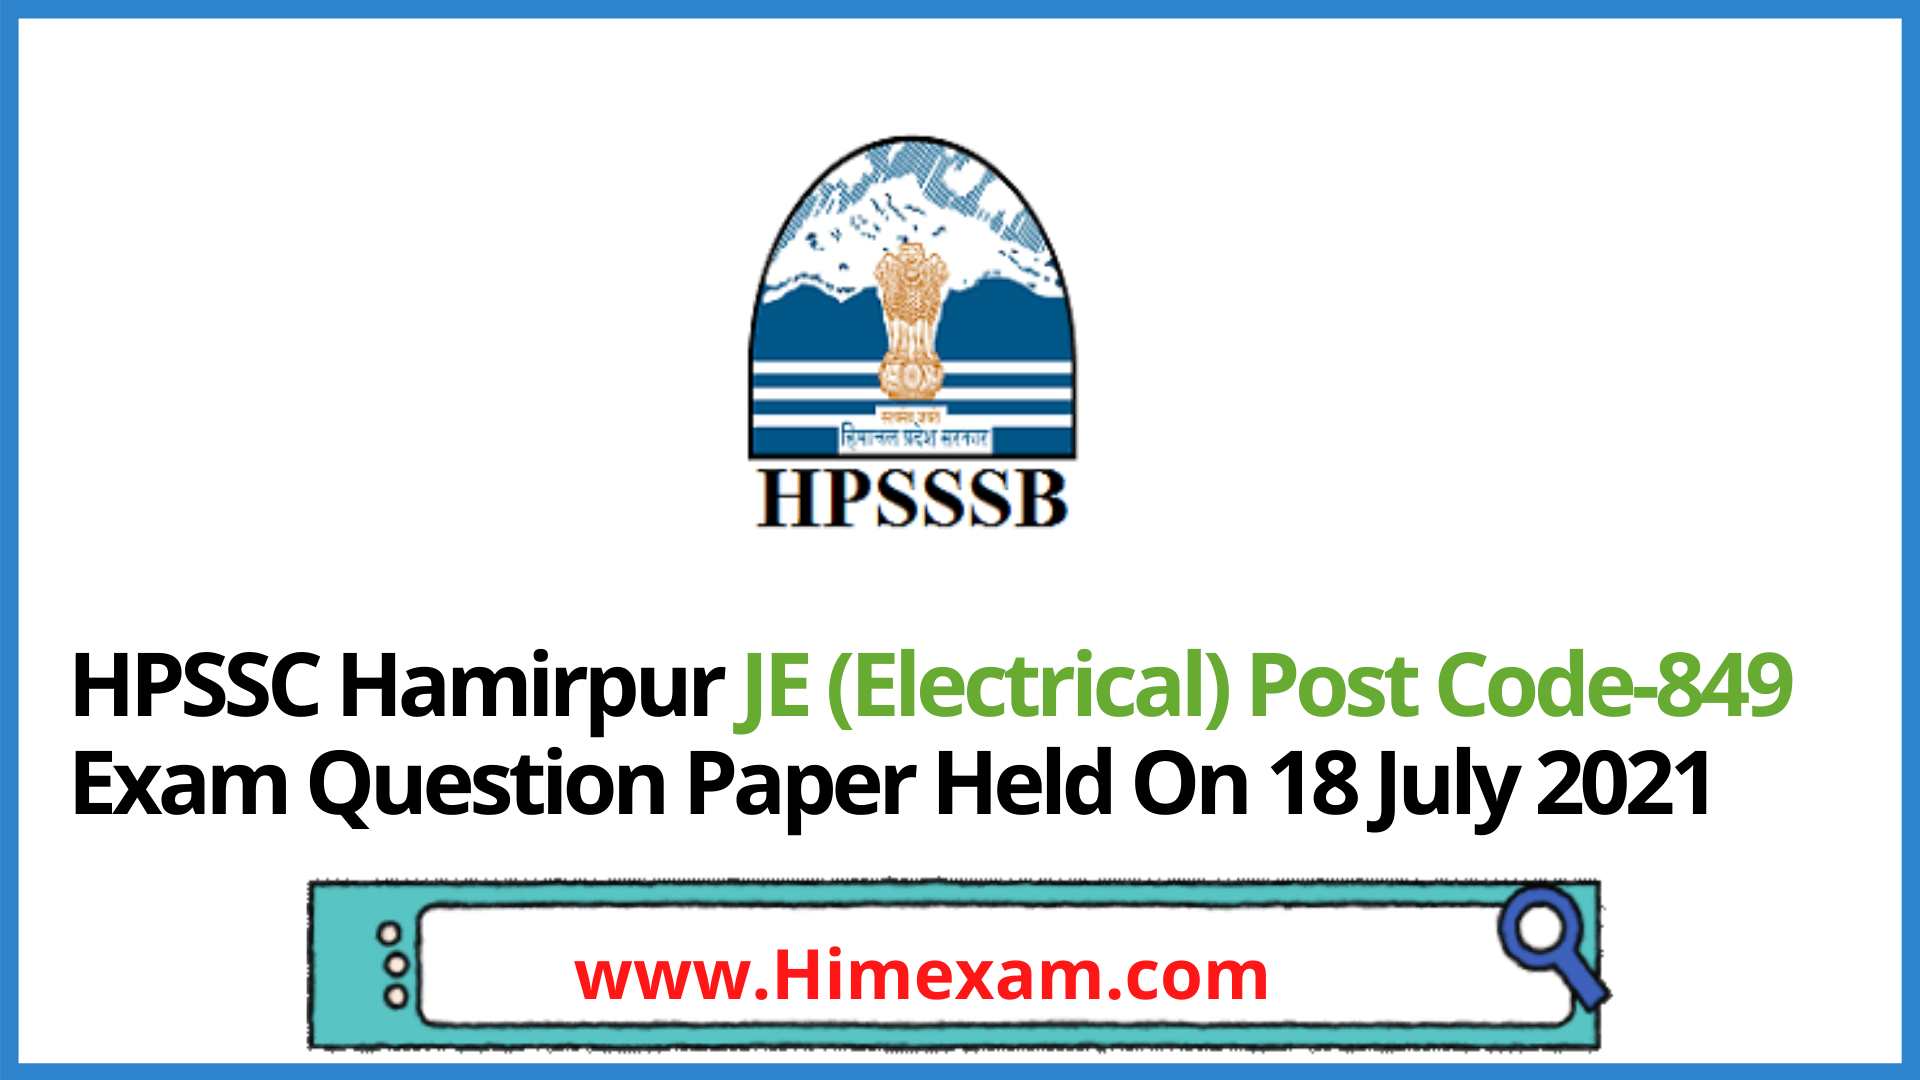 HPSSC Hamirpur JE (Electrical) Post Code-849 Exam Question Paper Held On 18 July 2021